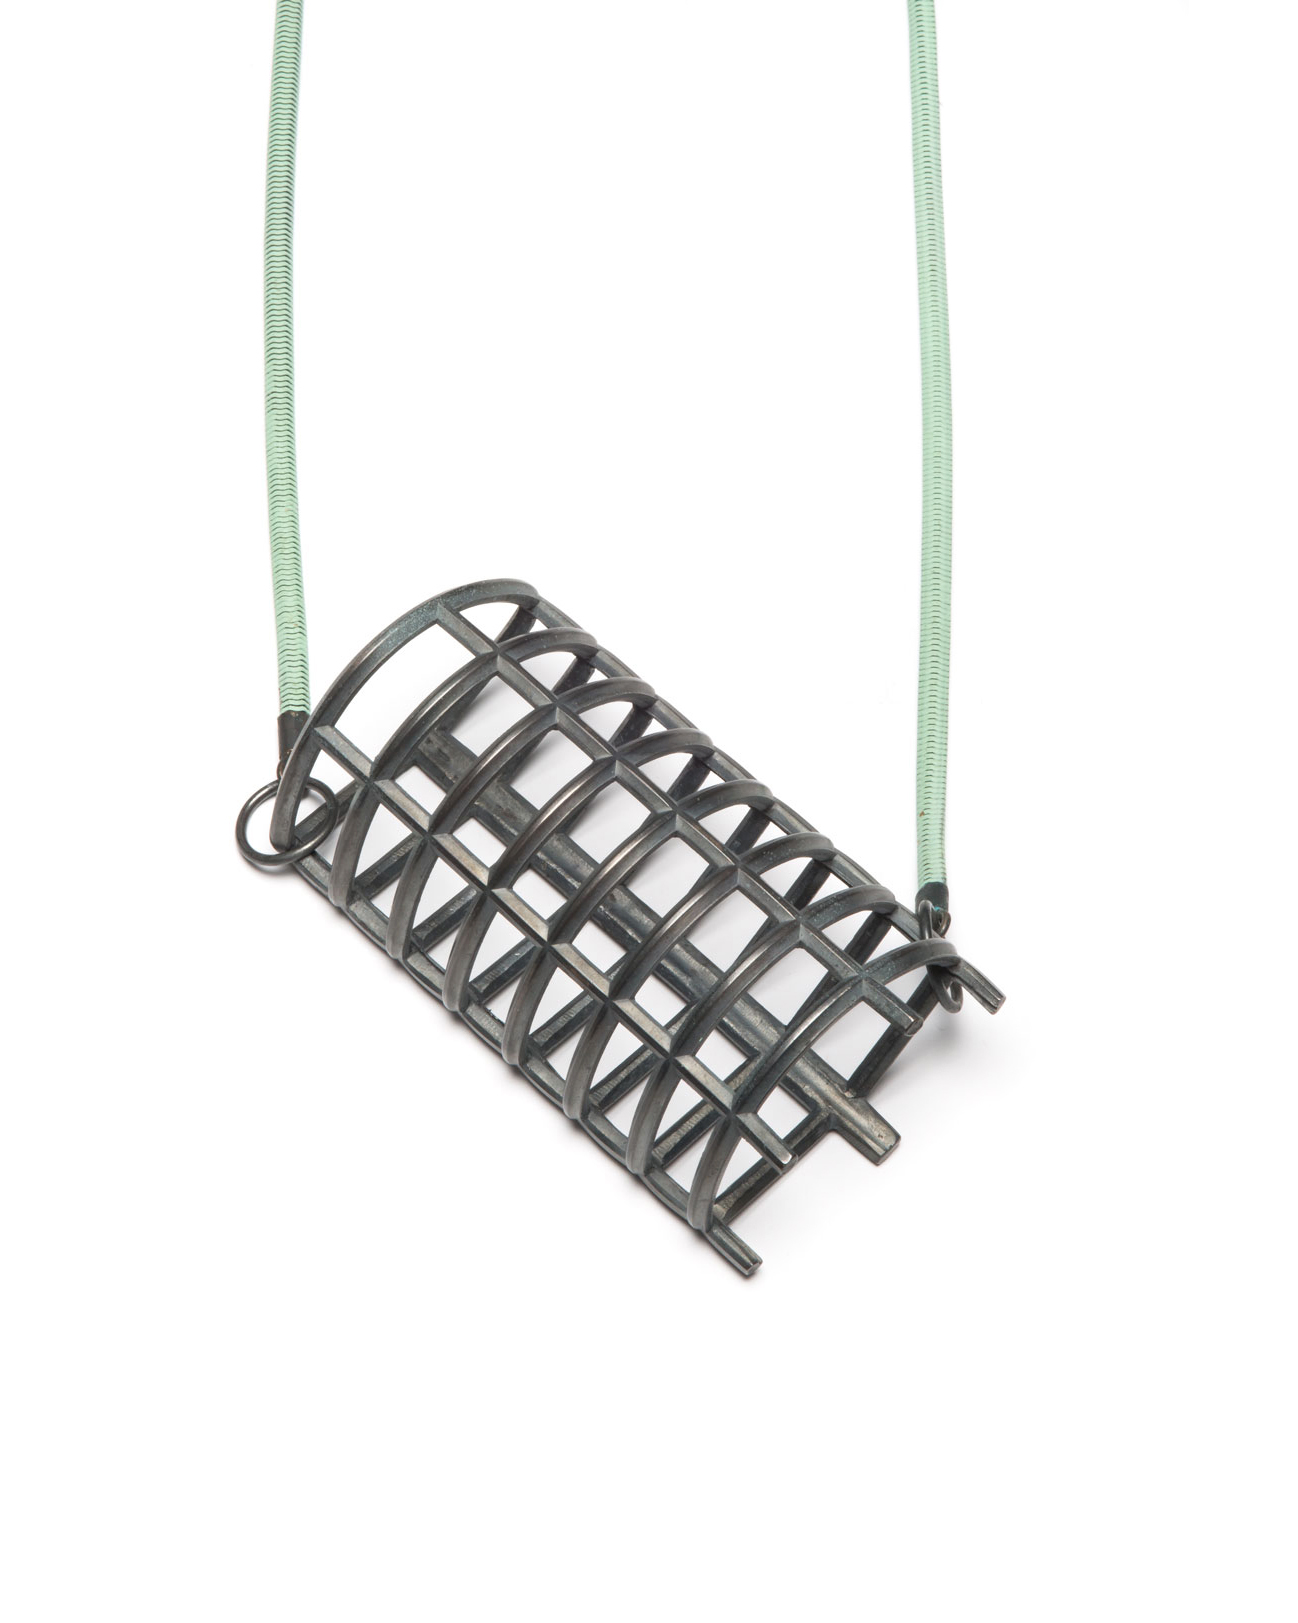 Winfried Krüger, untitled, 2008, pendant; oxidised silver, 110 x 65 mm, €2300